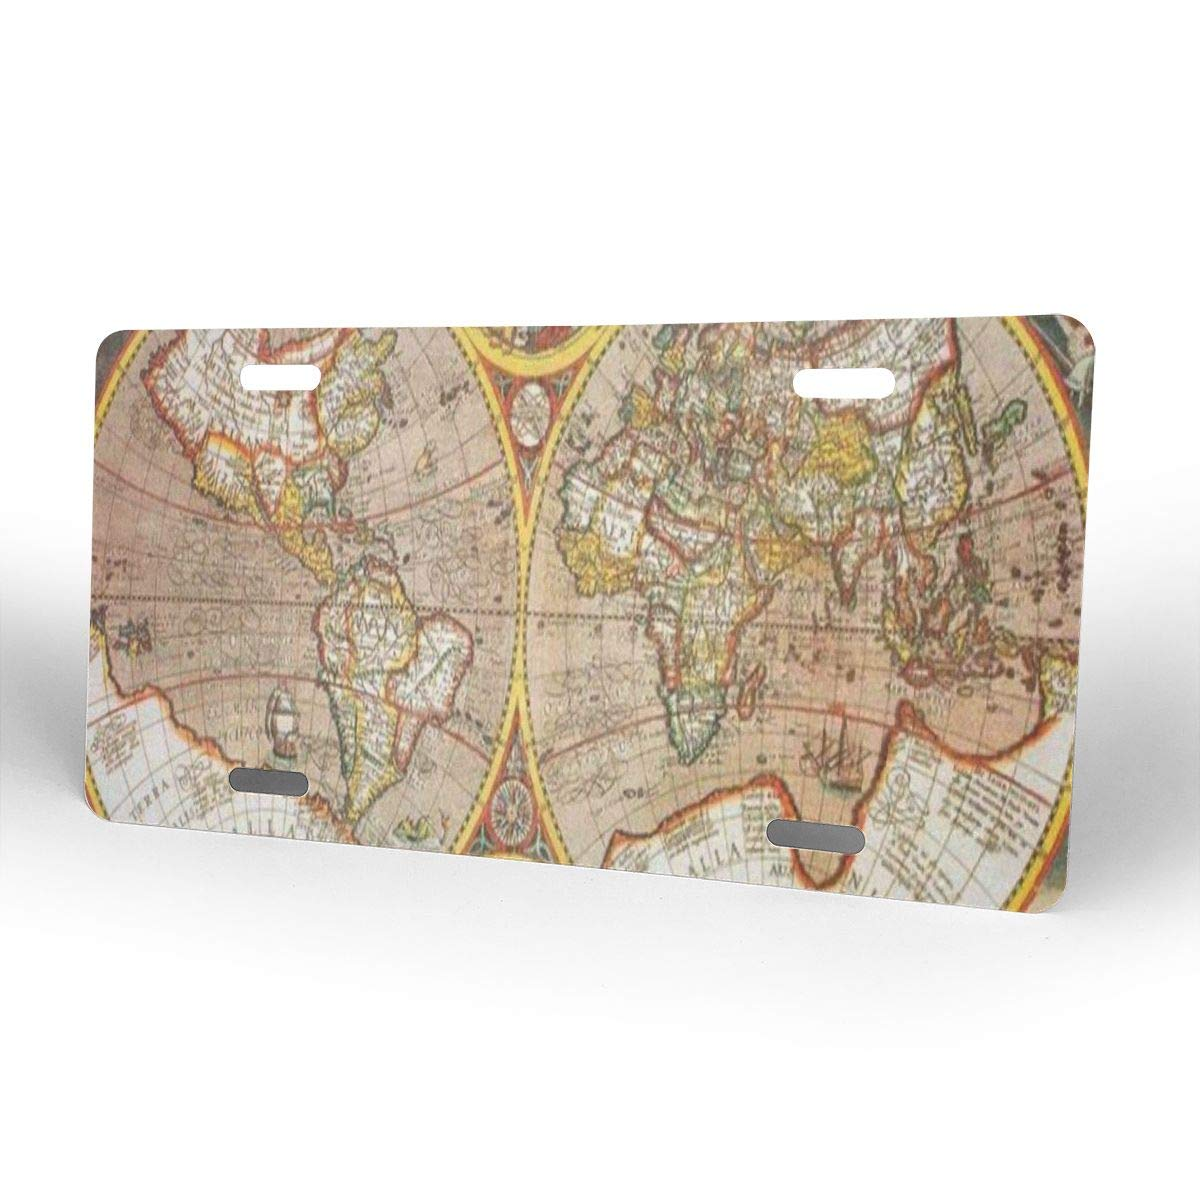 Amazon.com: Pingshoes Antique World Map Novelty License ... on state license plates, ohio license plates, preamble license plates, florida license plates, government license plates, germany license plates, pennsylvania license plates, front license plates,